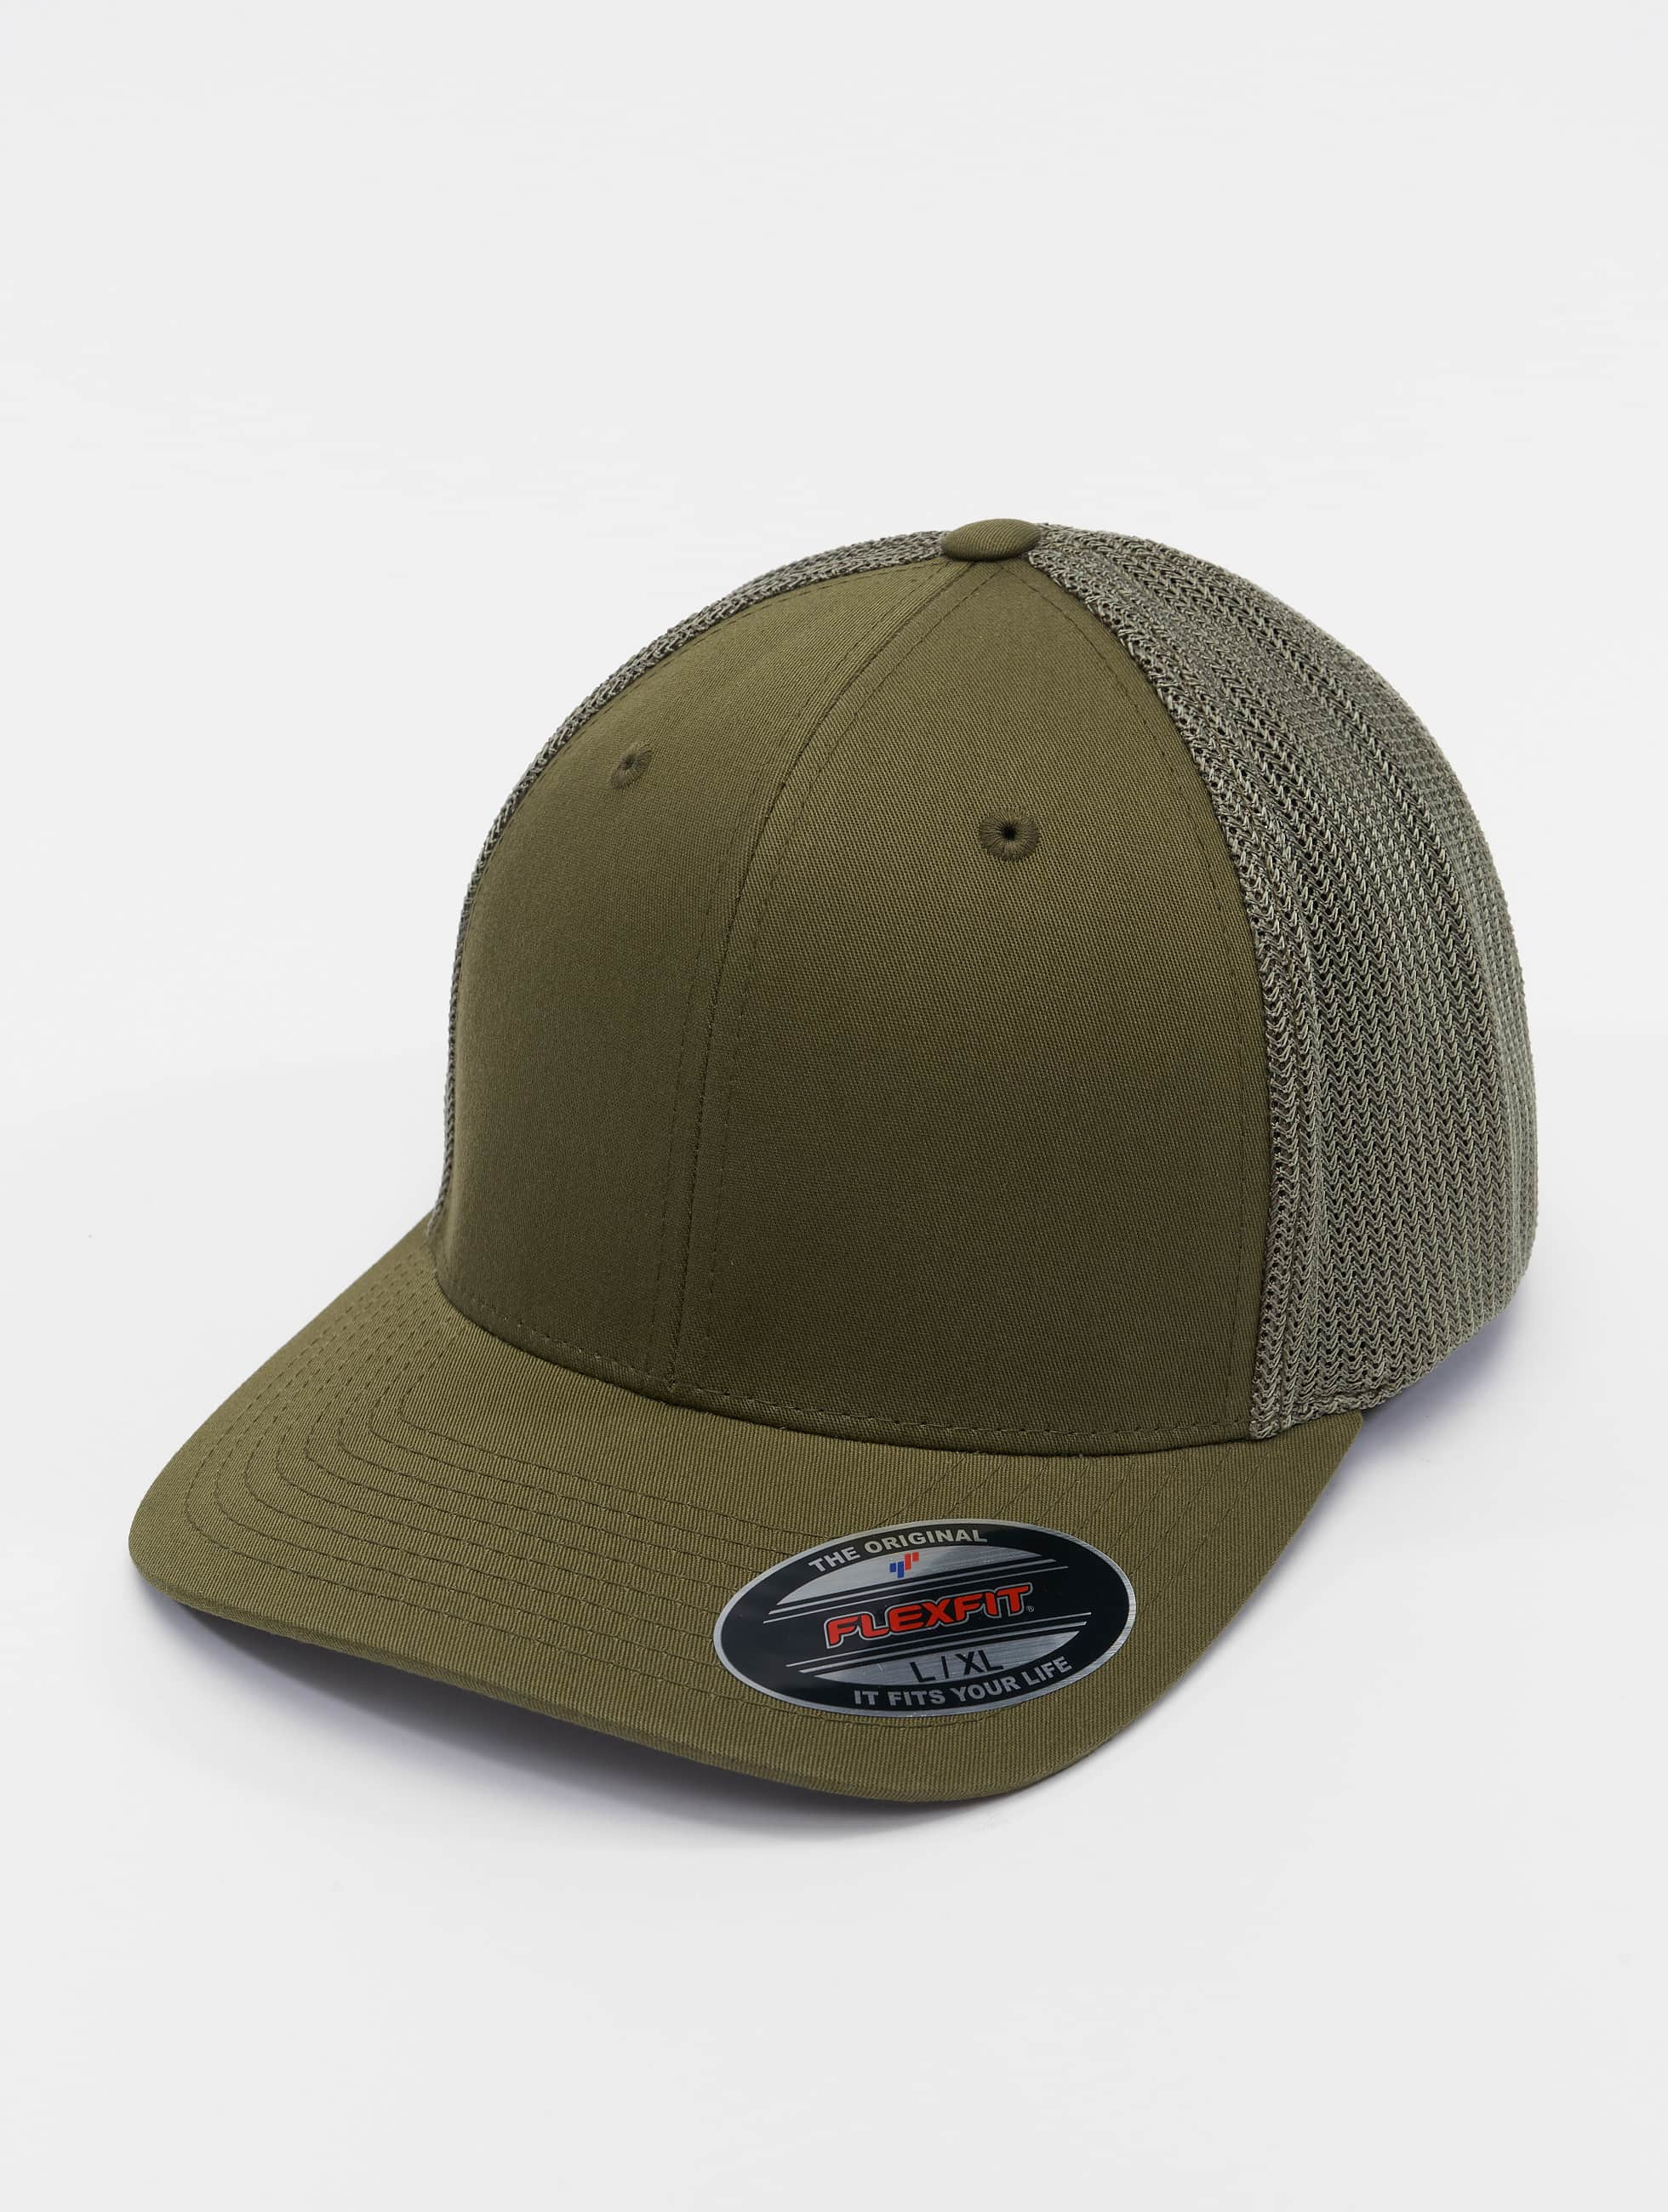 Flexfit Flexfitted Cap Mesh Cotton Twill olivový